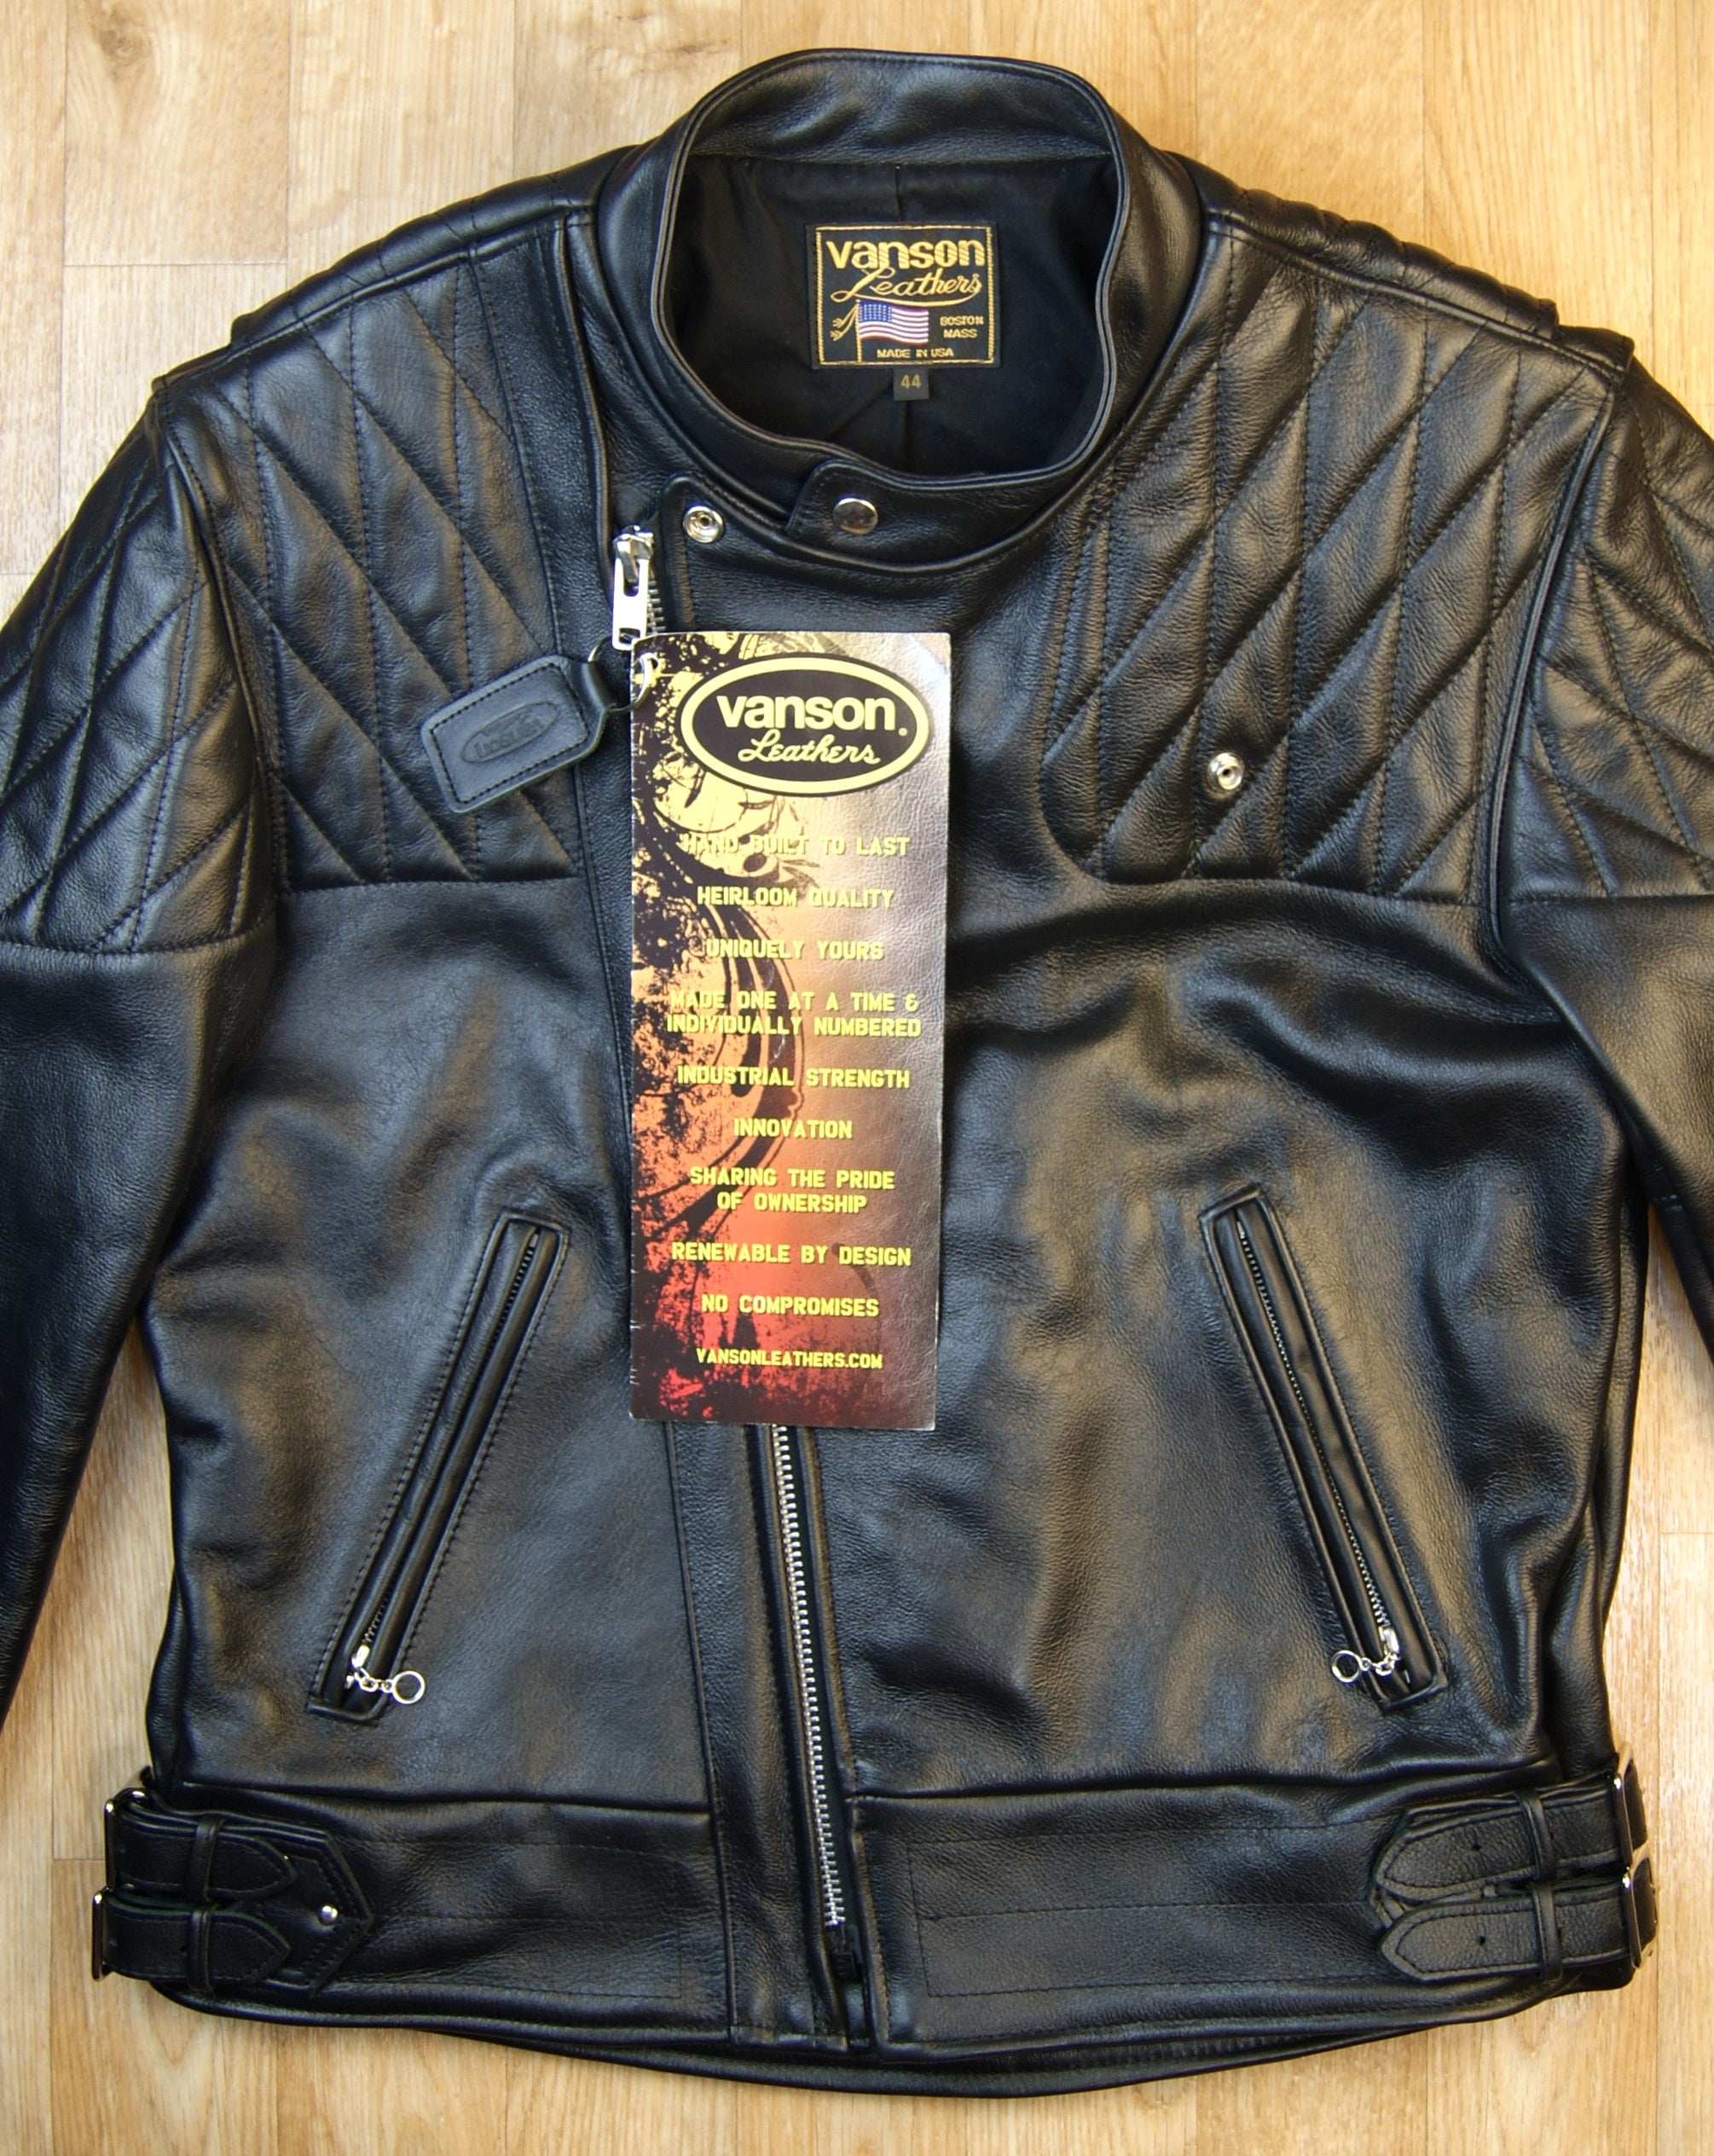 Vanson Chopper Jacket, size 44